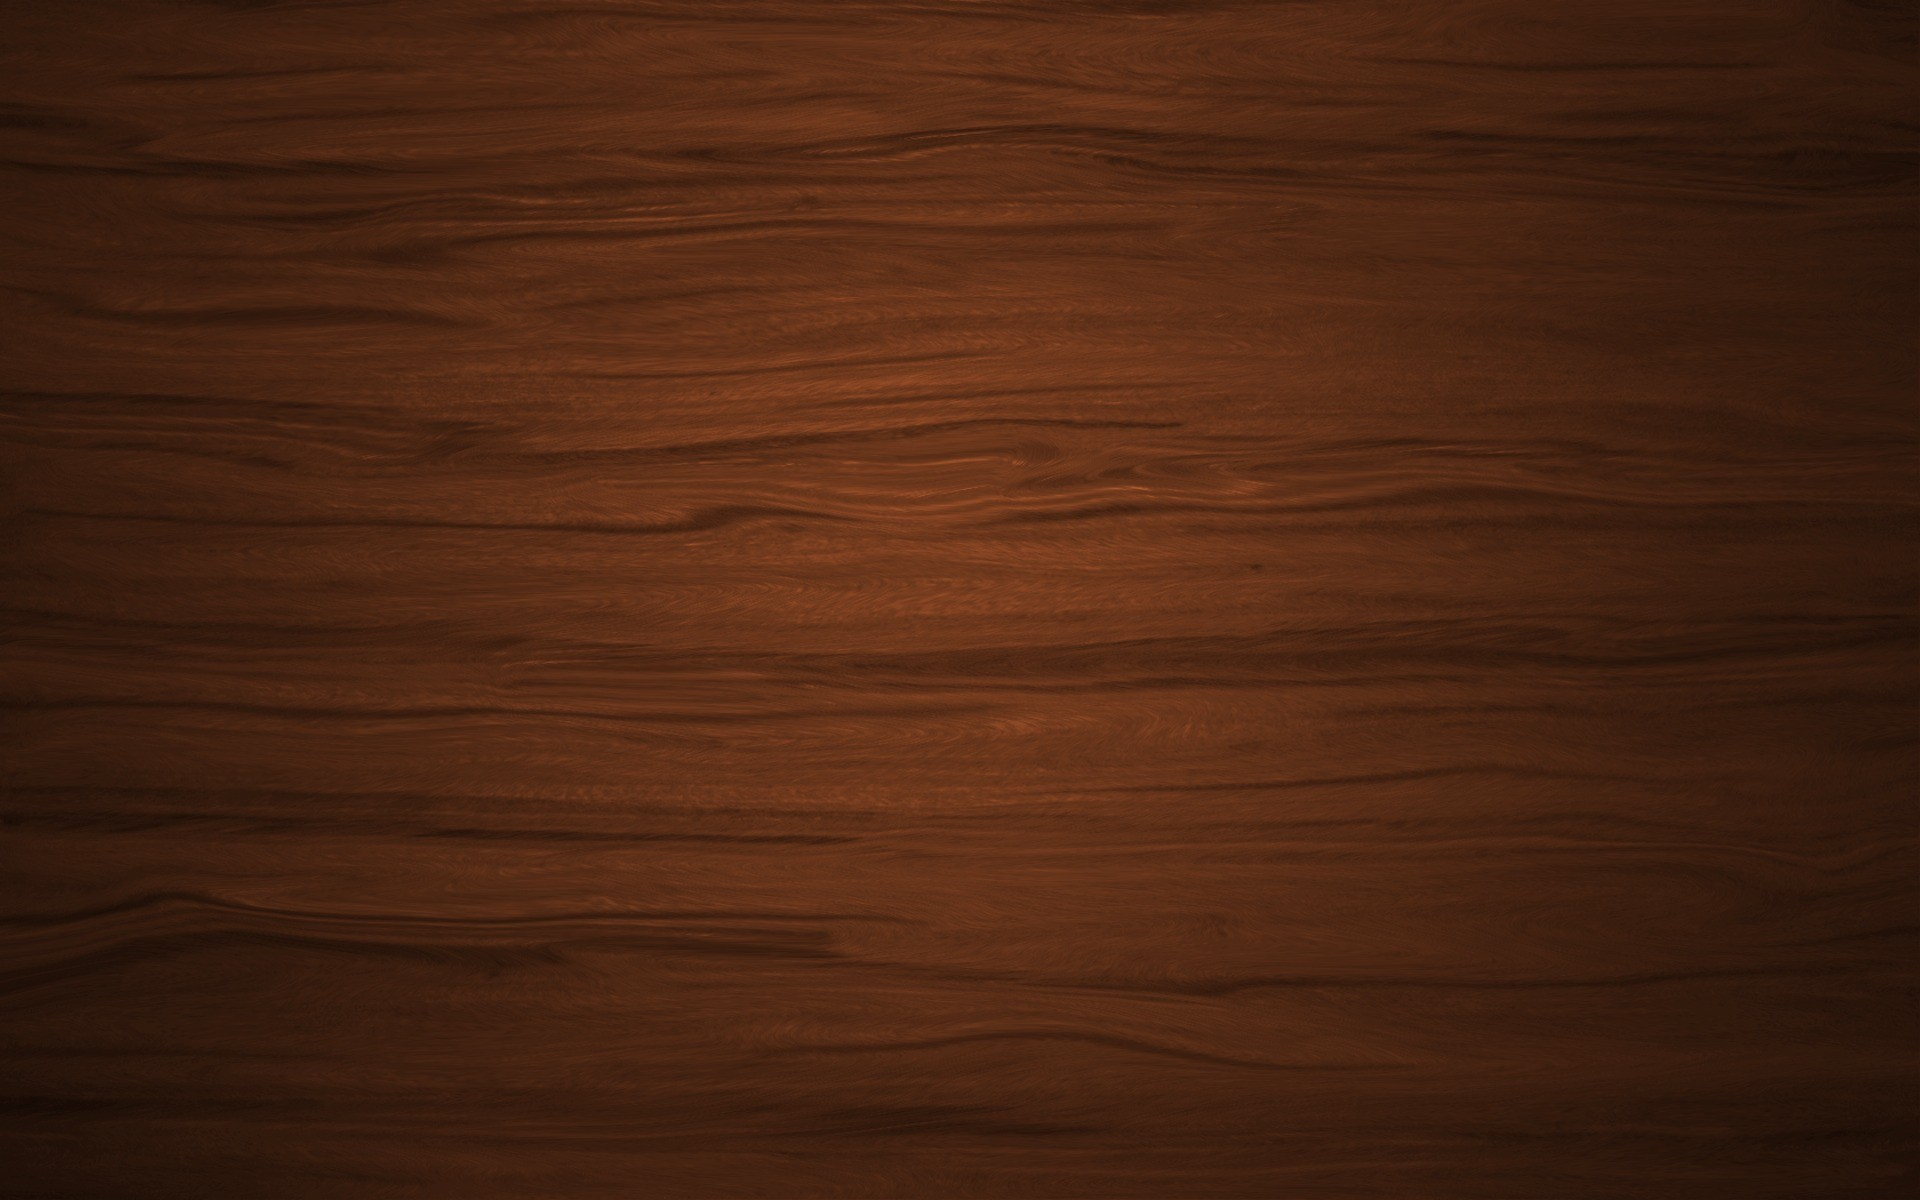 Wooden Desktop Wood Texture Background ① Download Free Full Hd